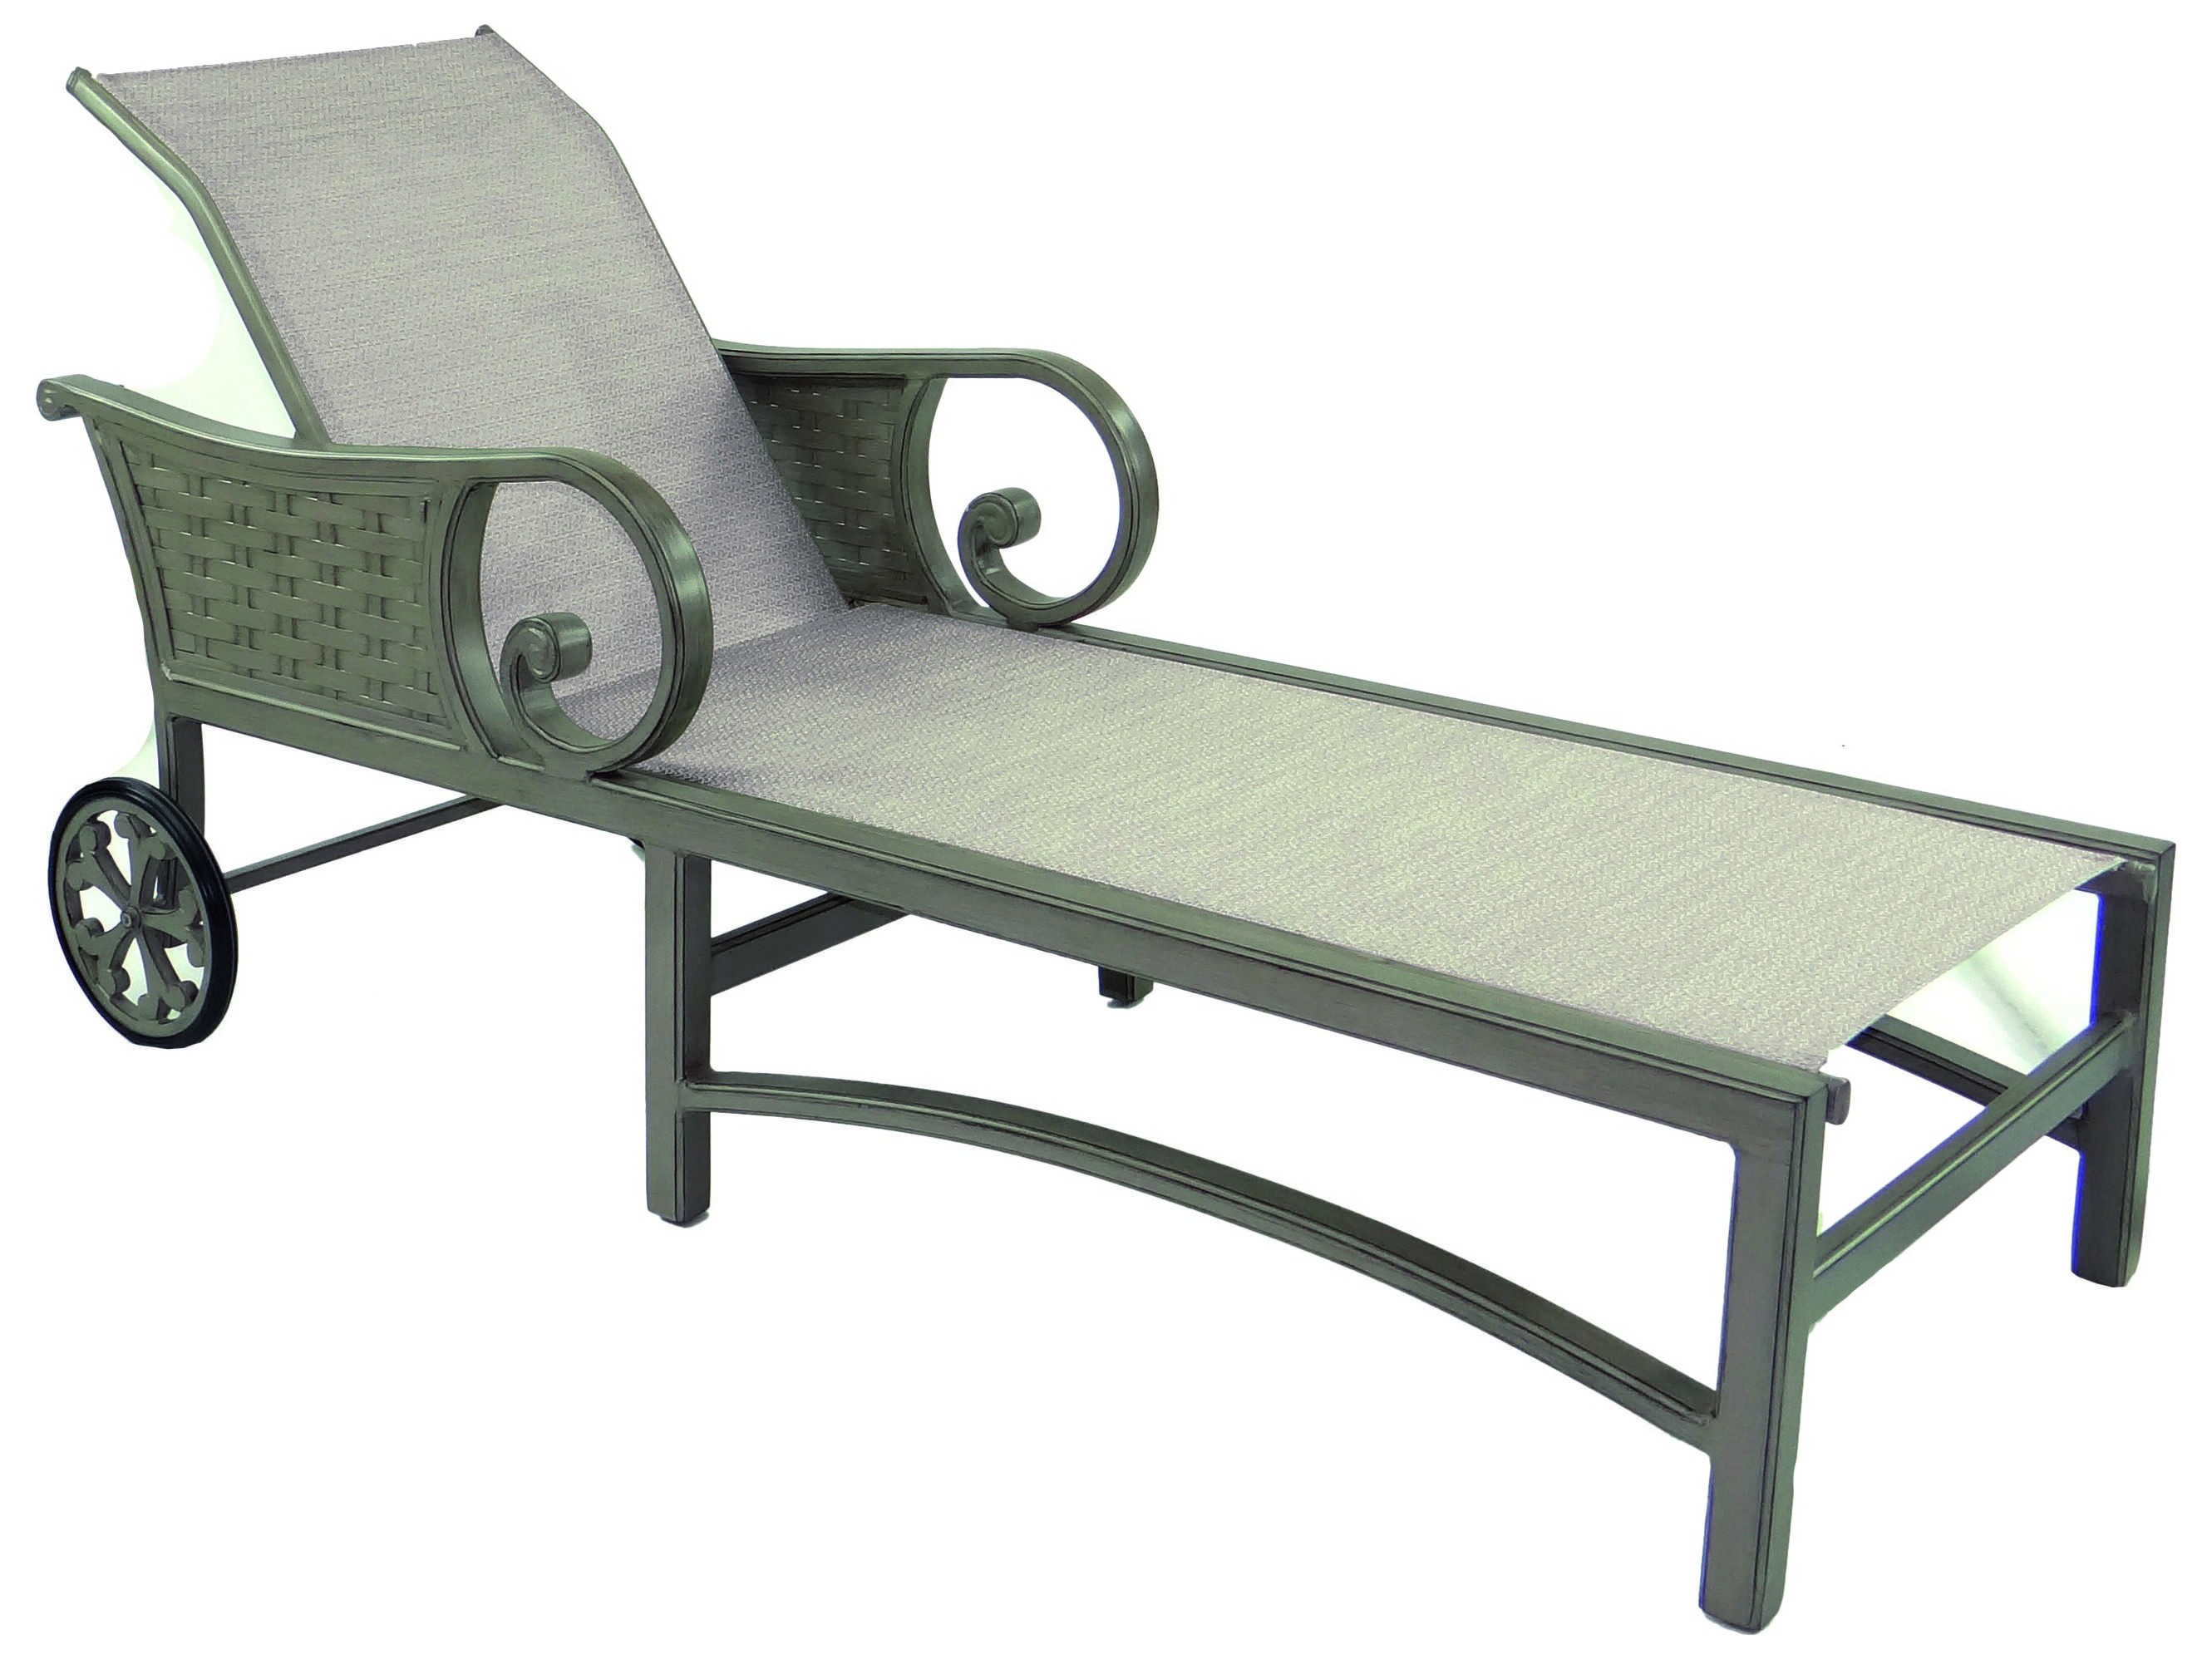 Castelle riviera sling cast aluminum adjustable chaise for Aluminum chaise lounge with wheels